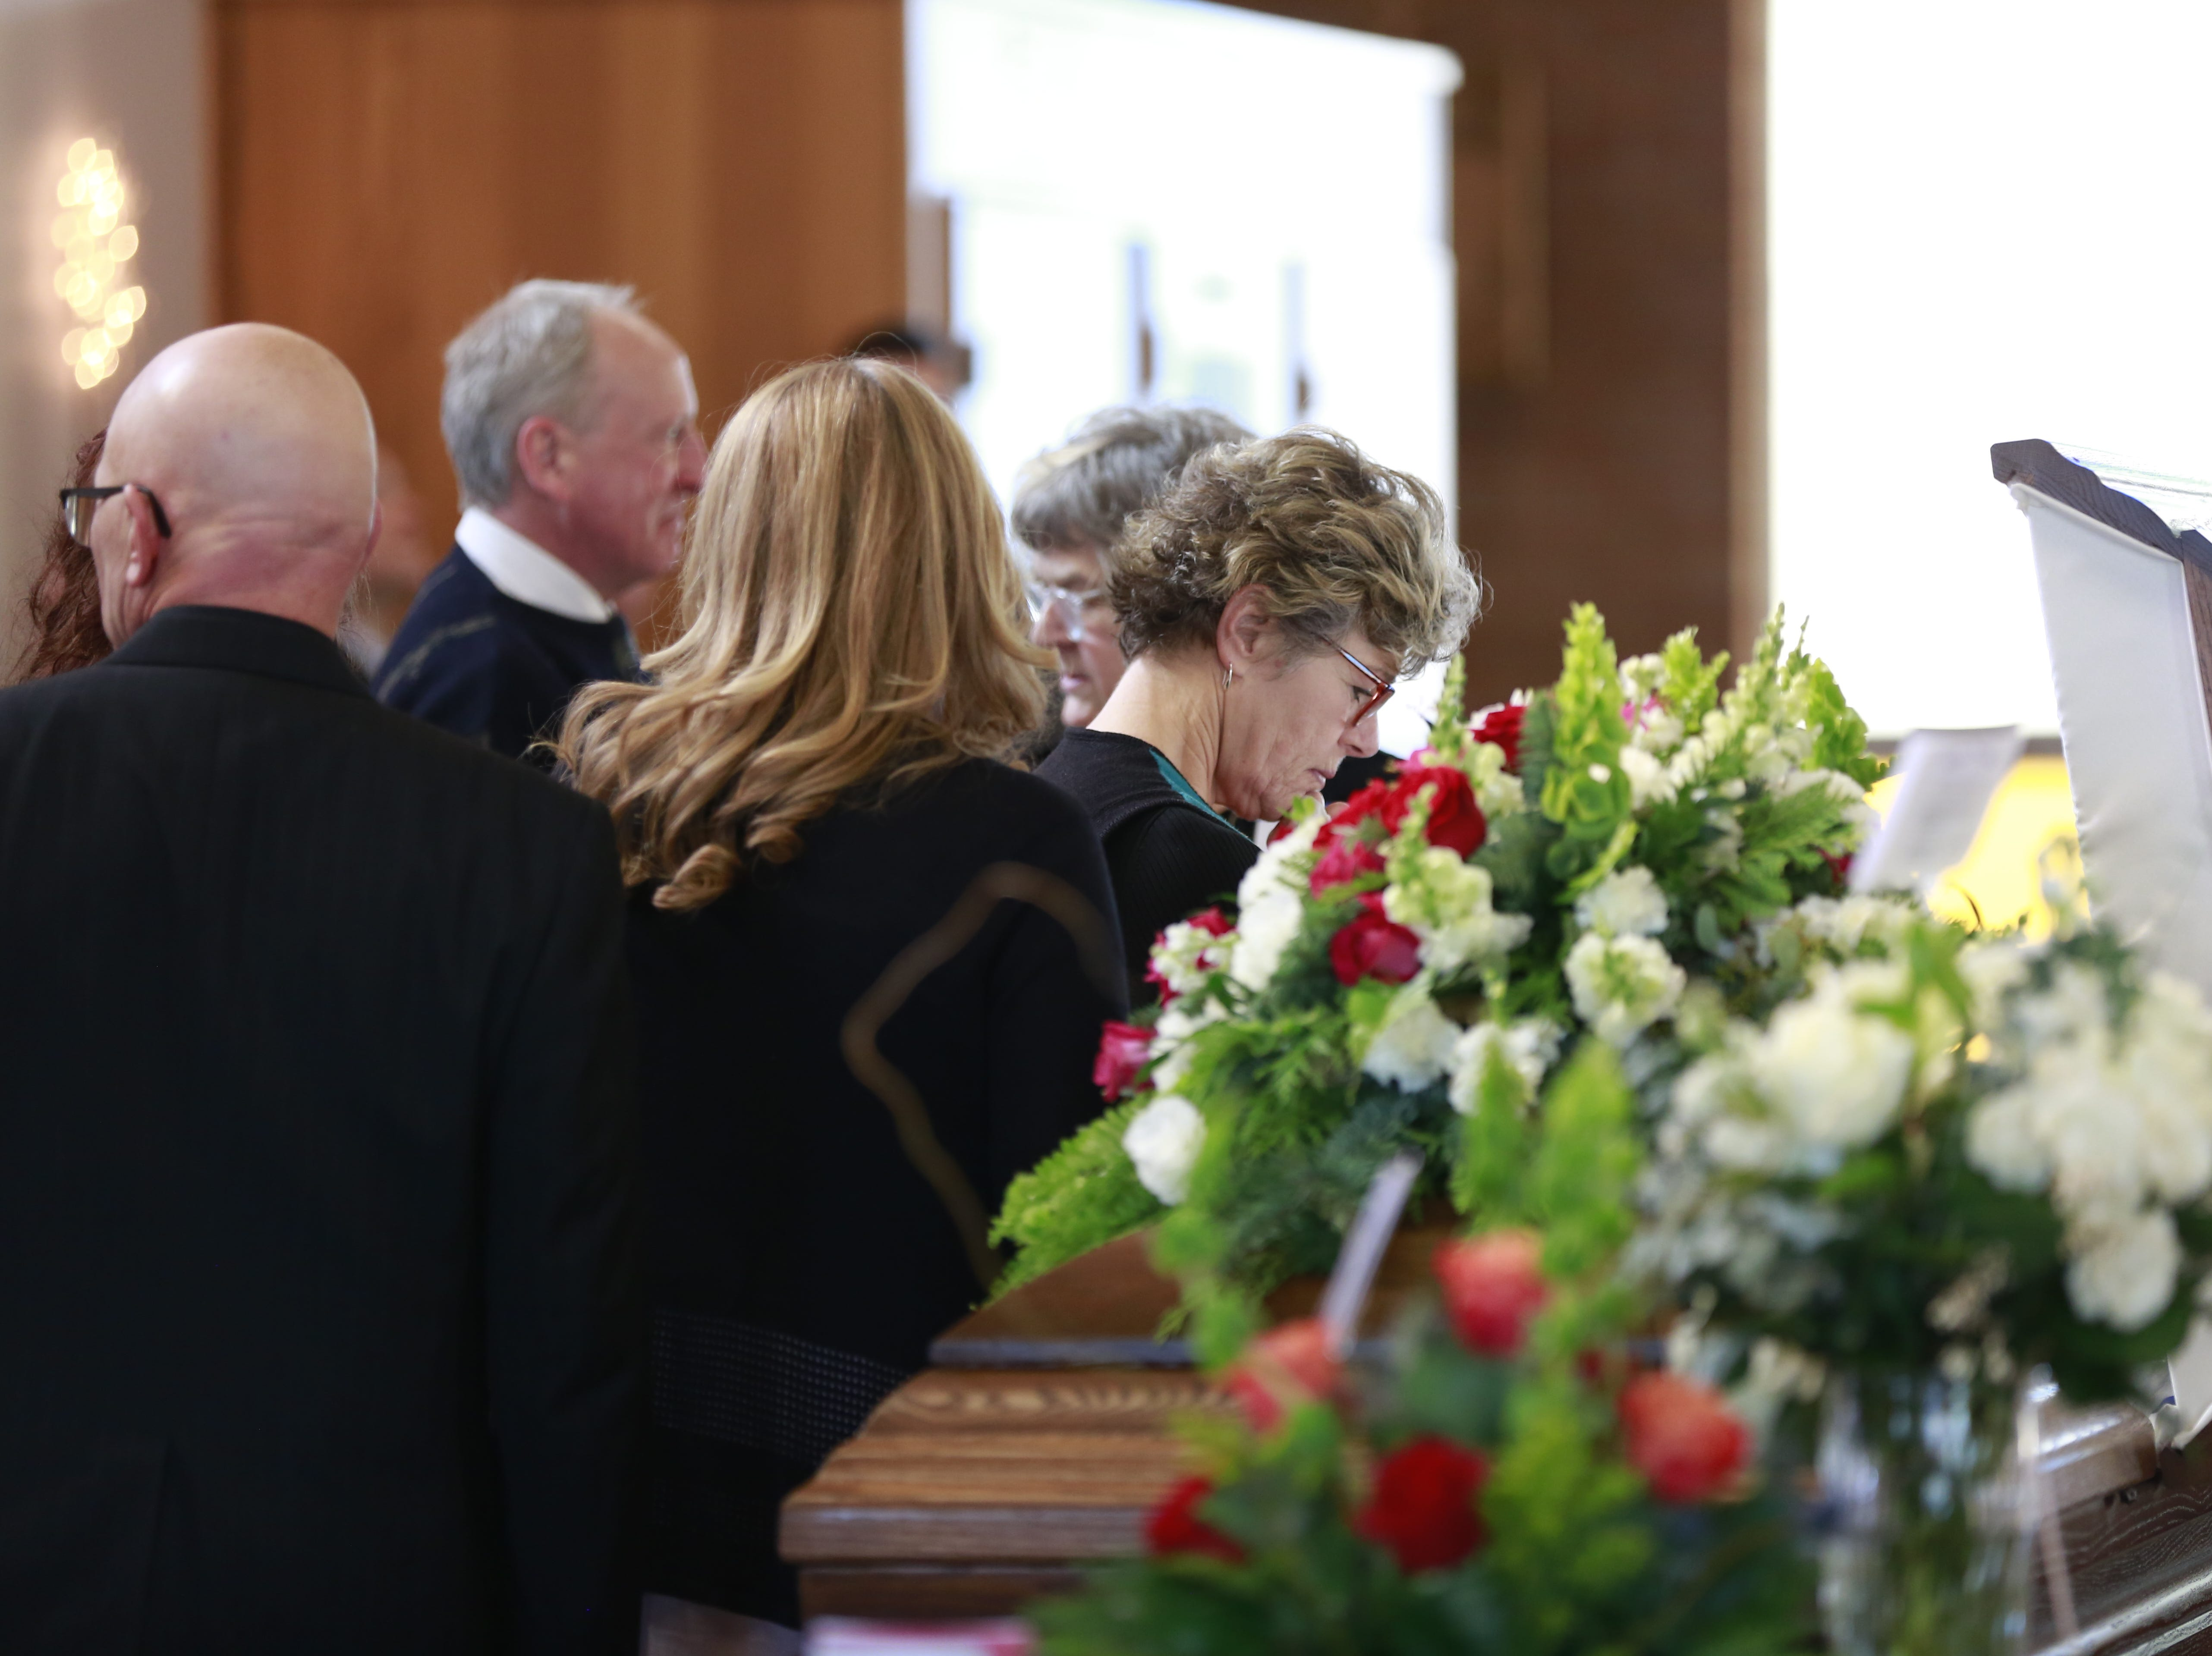 Family members and friends attend former Sen. Walter Chilsen's funeral service Friday, Jan. 04, 2019, at Holy Name of Jesus Parish in Wausau, Wisc. T'xer Zhon Kha/USA TODAY NETWORK-Wisconsin